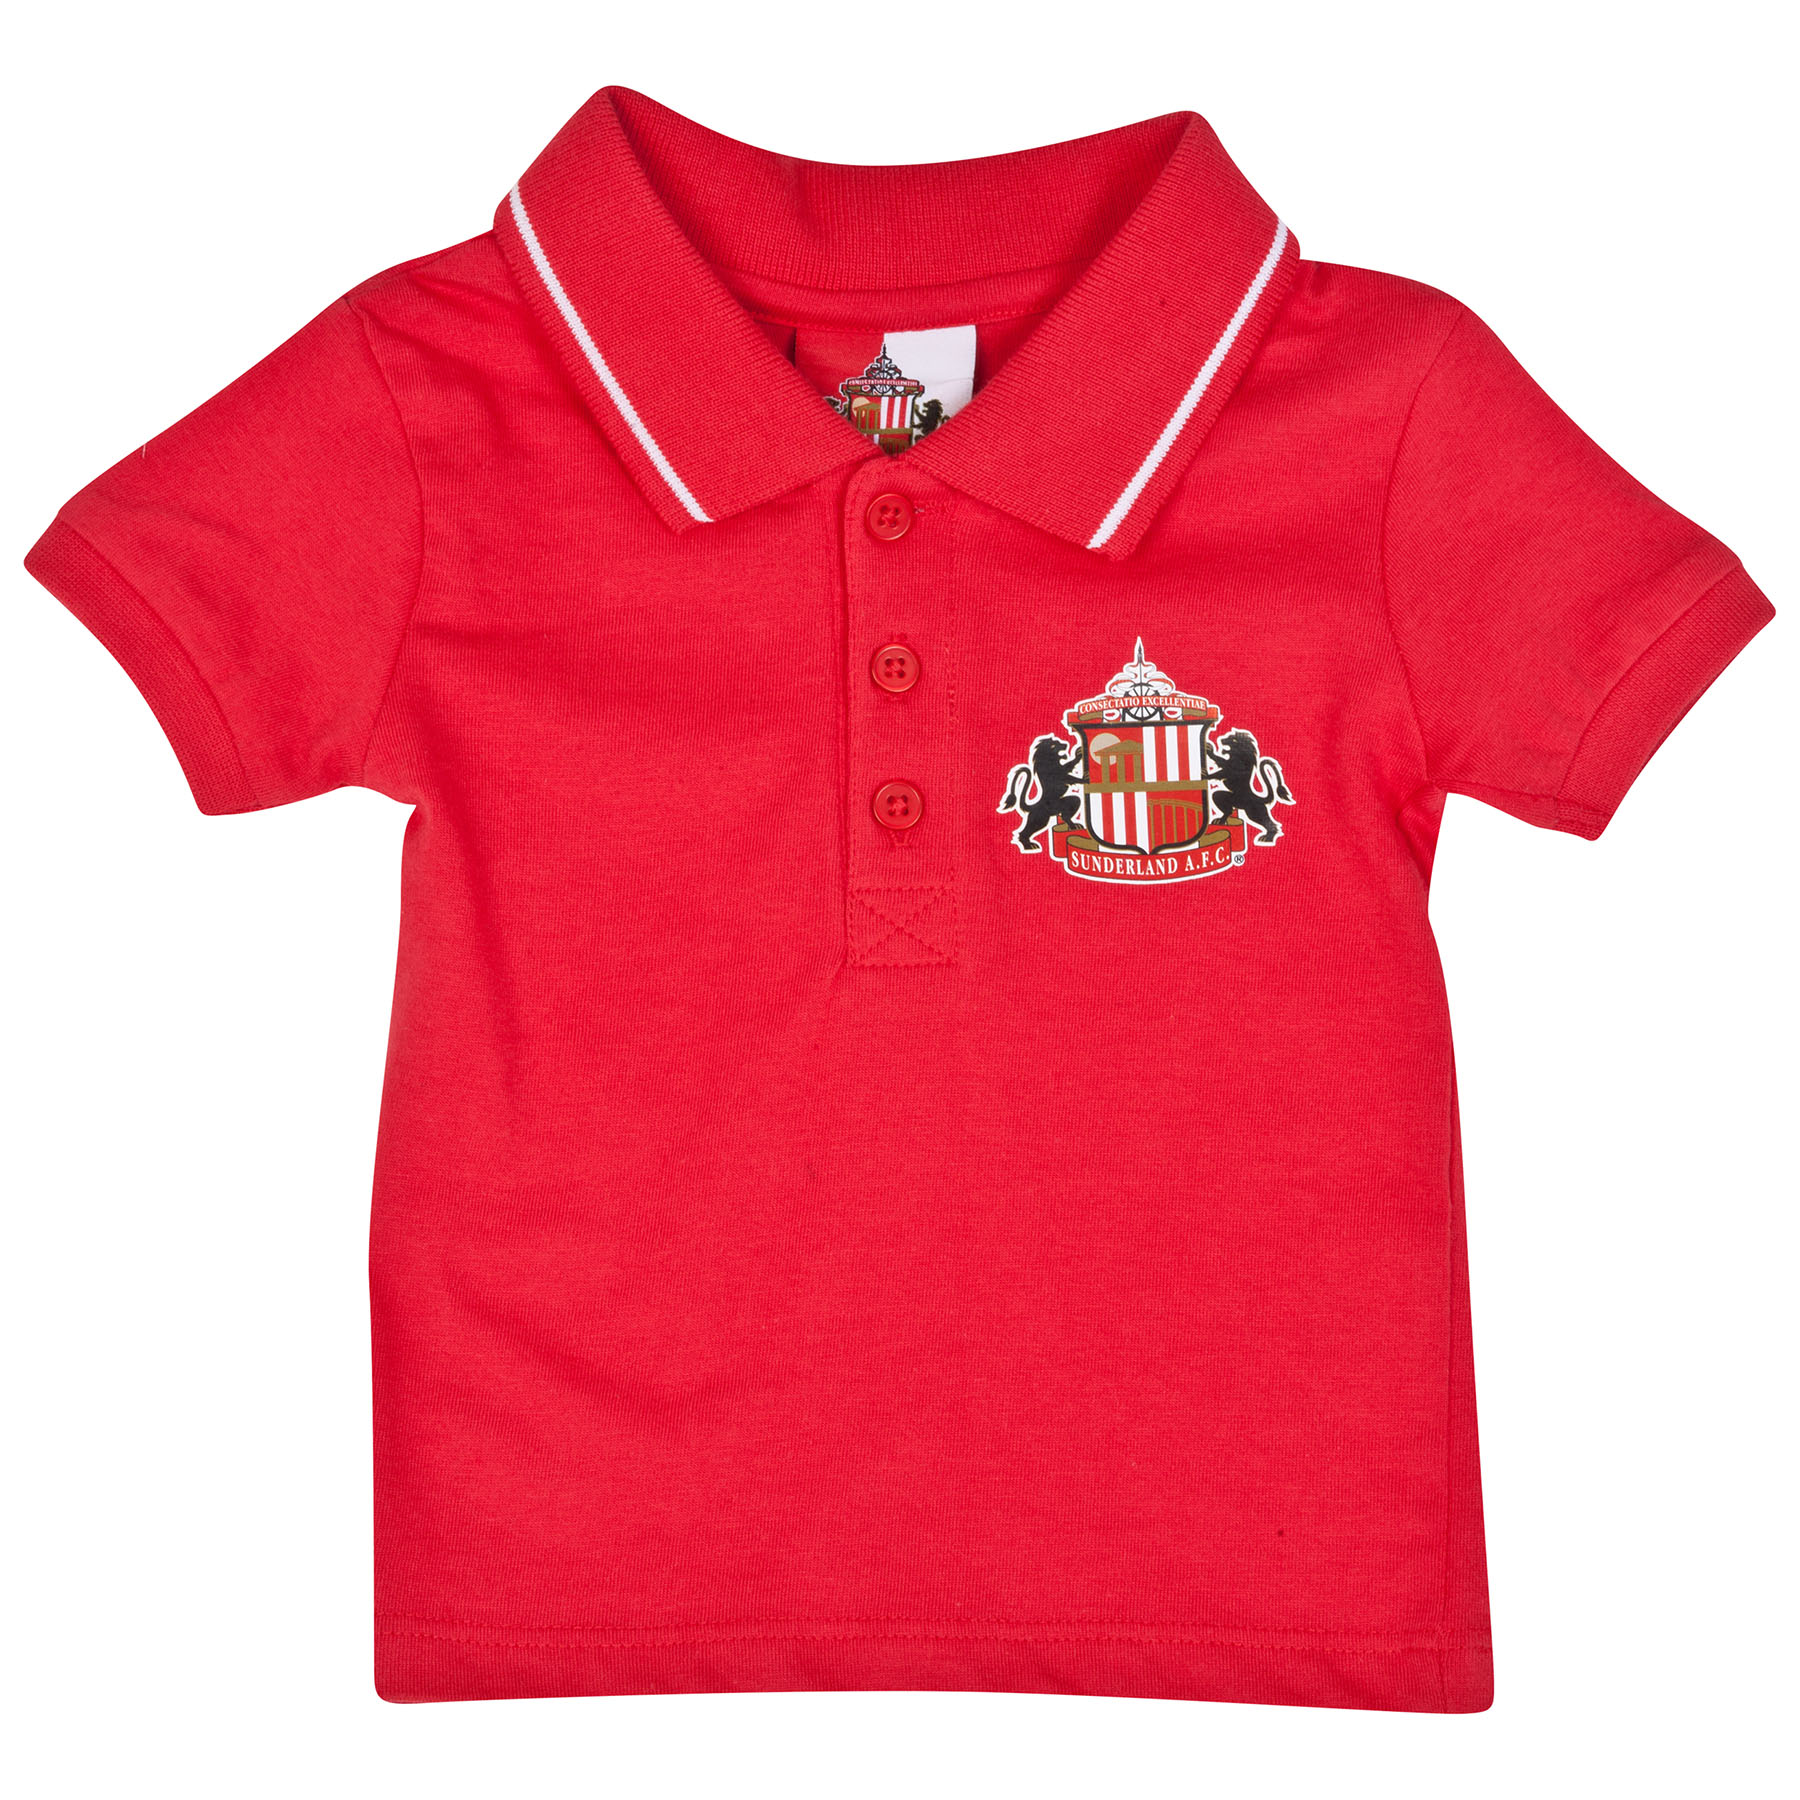 Sunderland Marco Polo Shirt-Baby Red